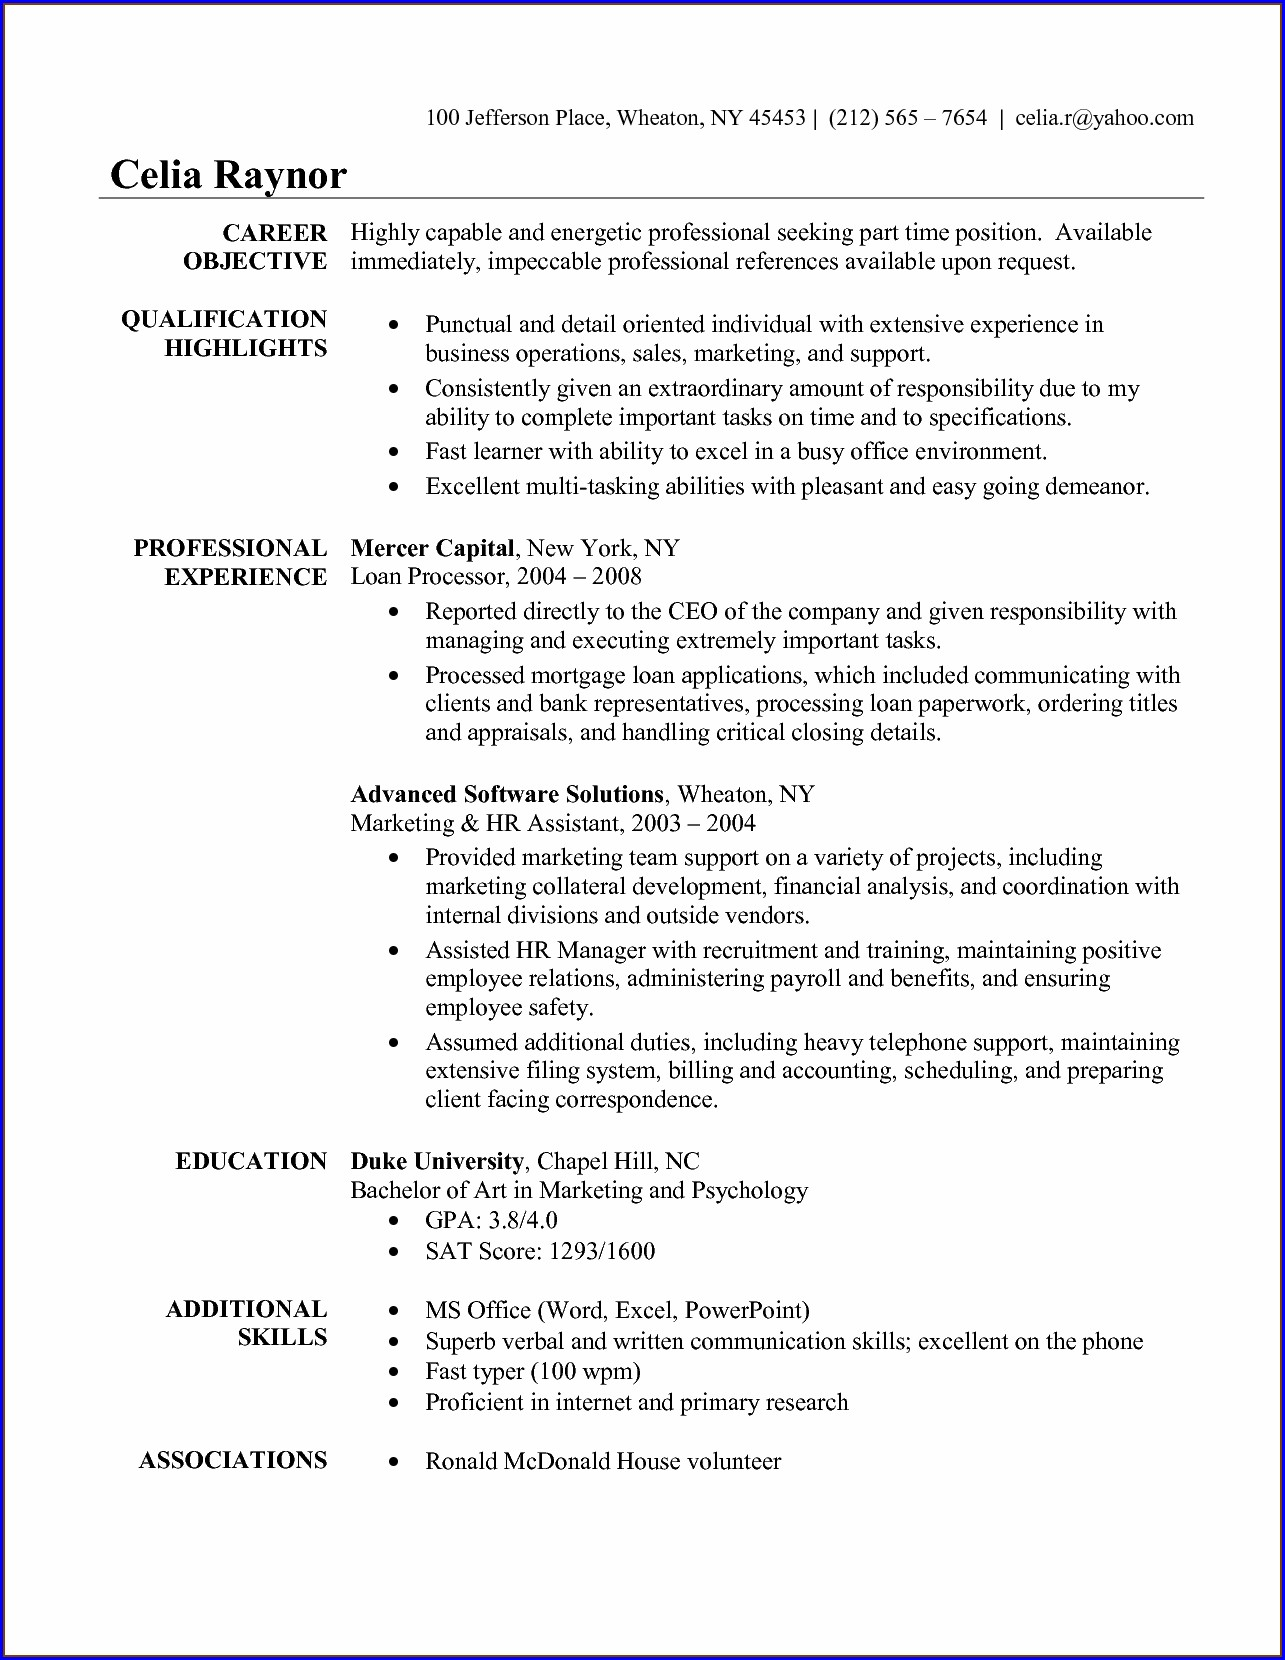 Sample Resume For Administrative Assistant With Experience